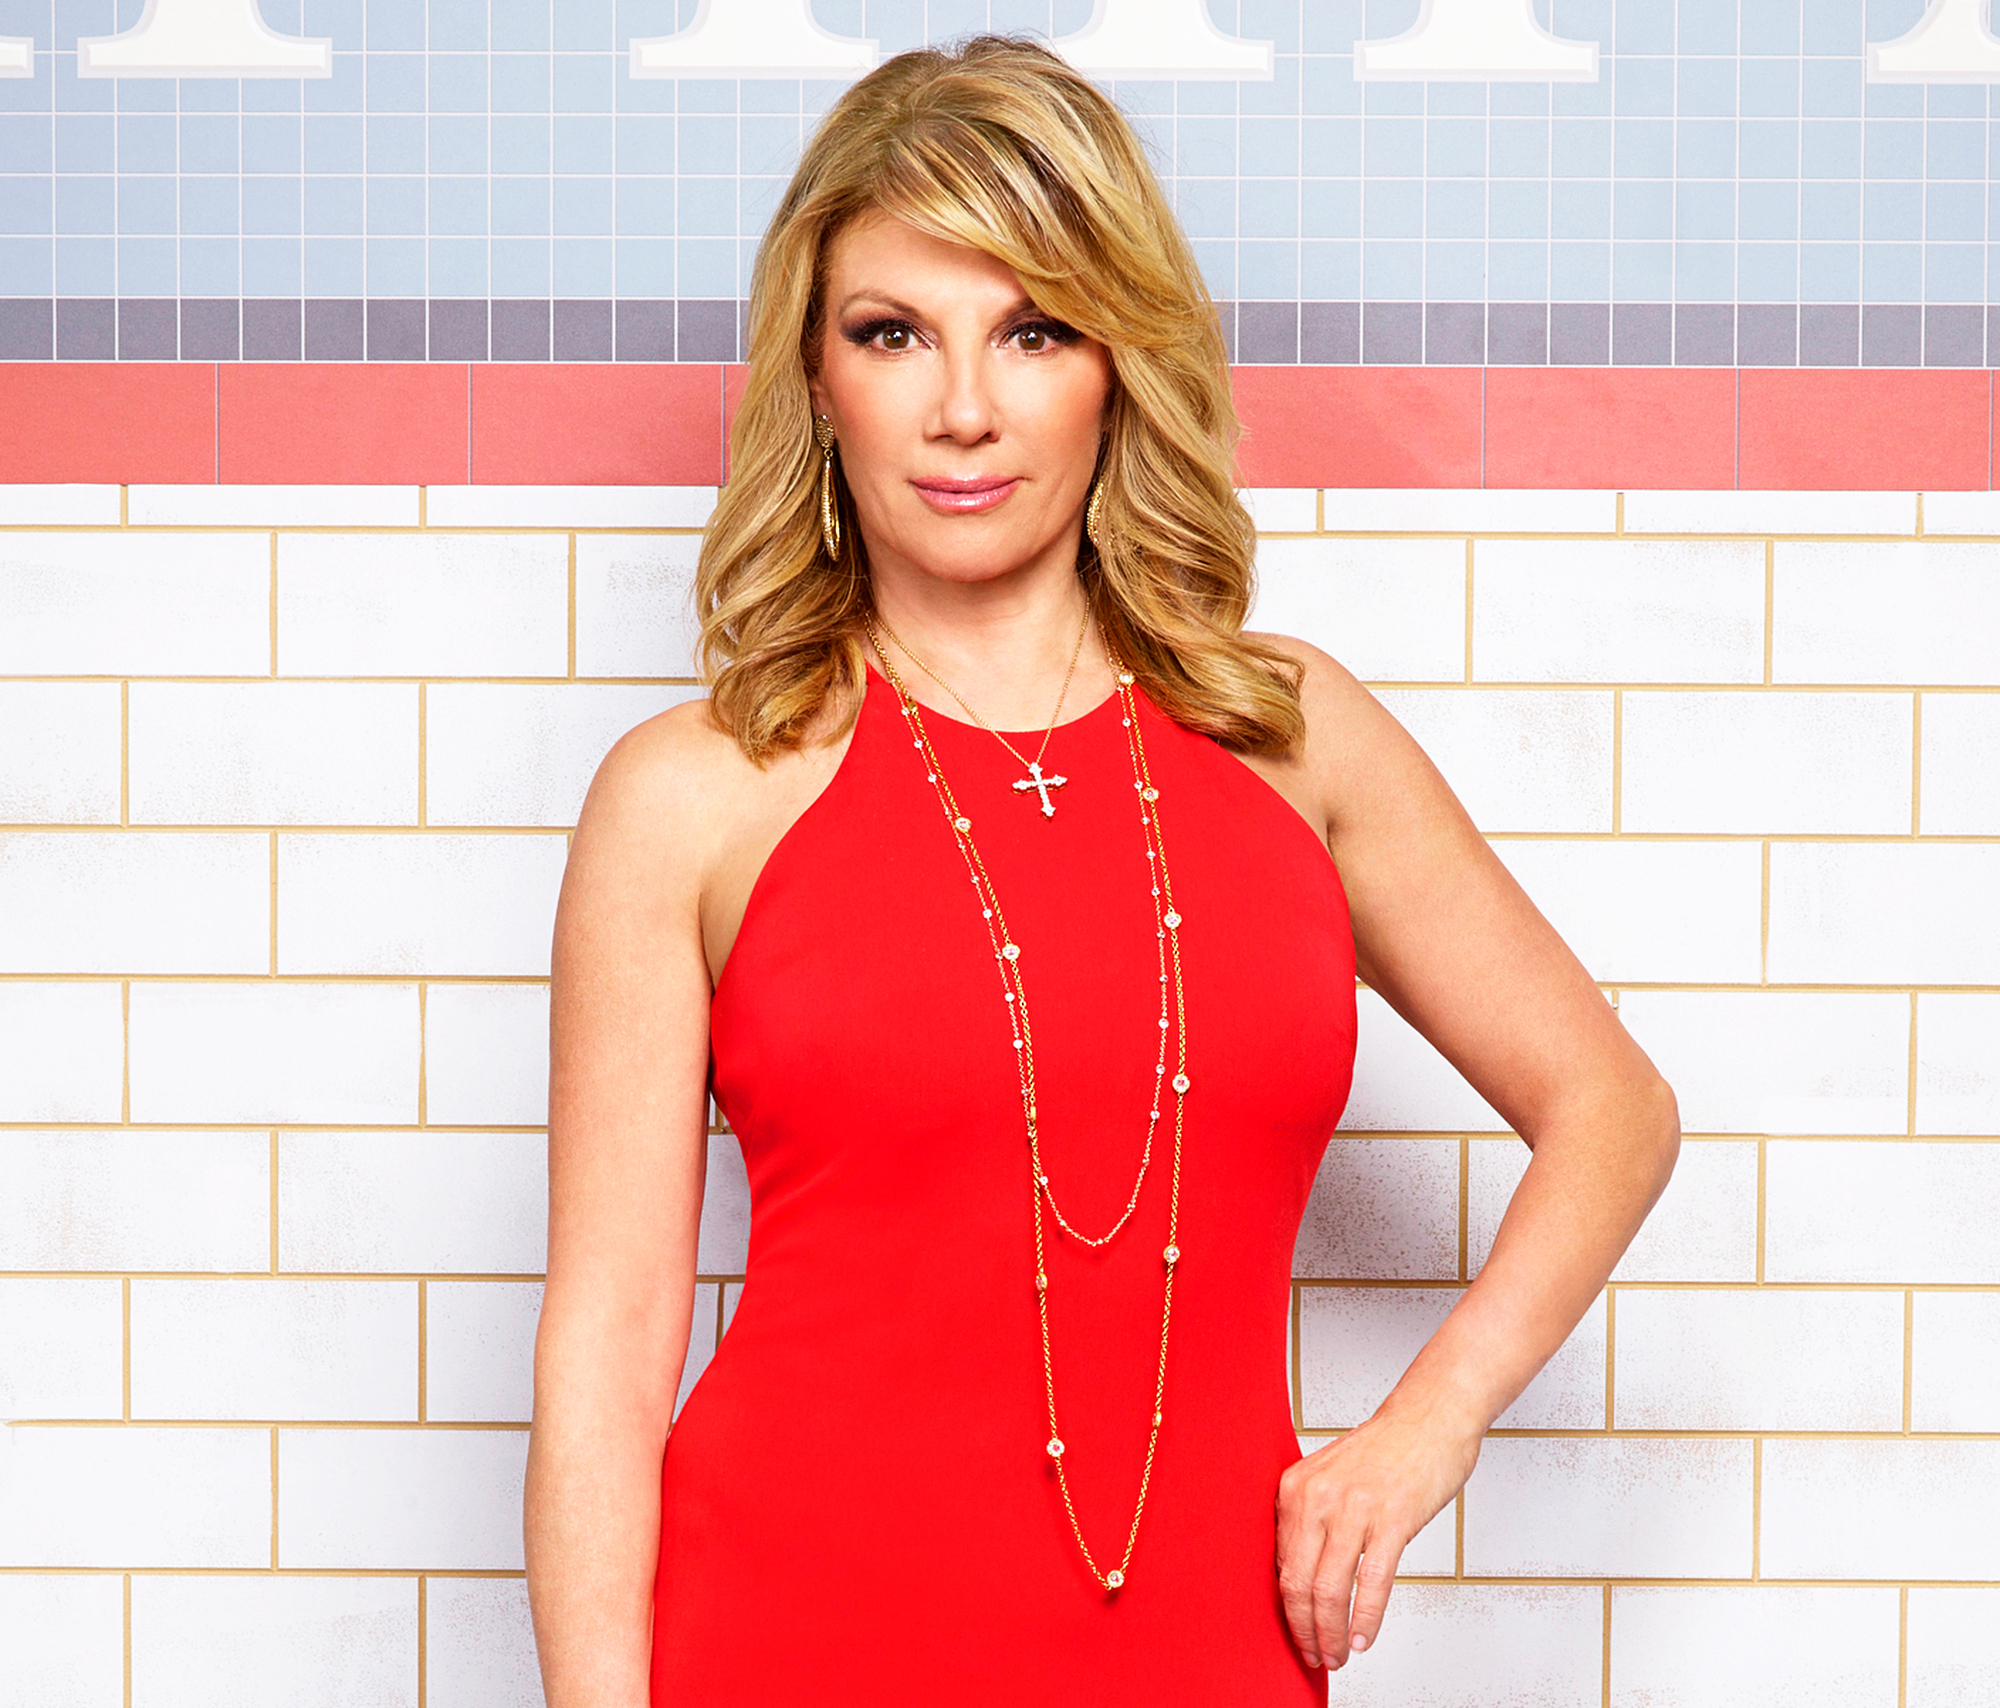 Ramona singer admits on ny housewives that she is dating someone